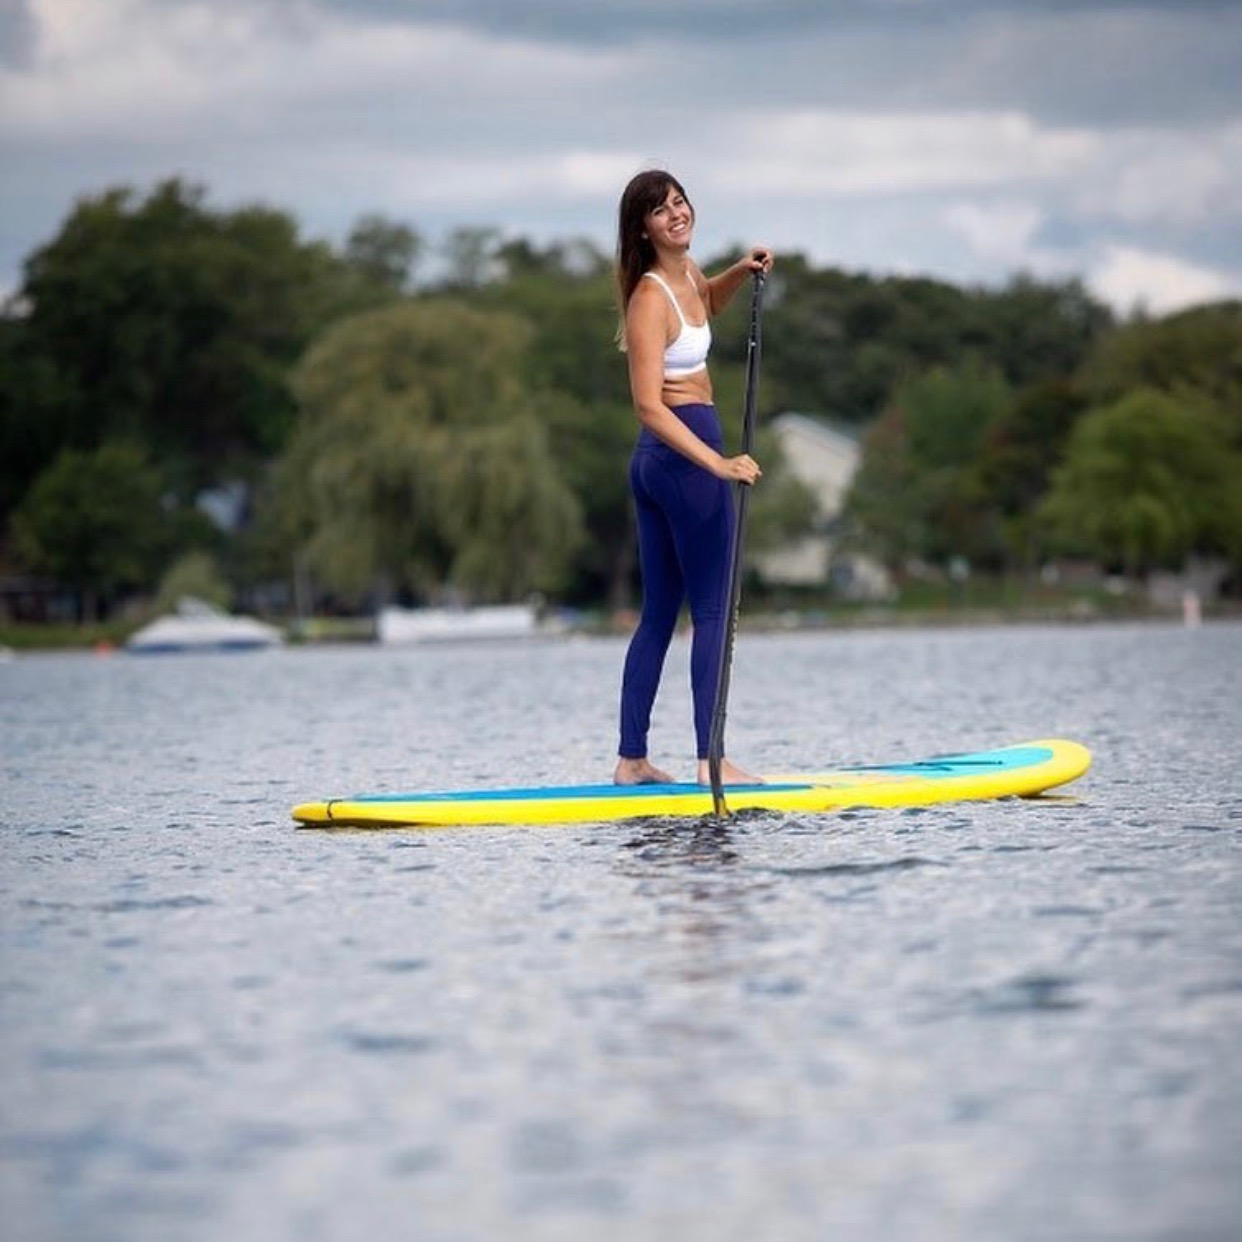 Stand Up Paddle Boarding - 8:00 am to 9:00 am